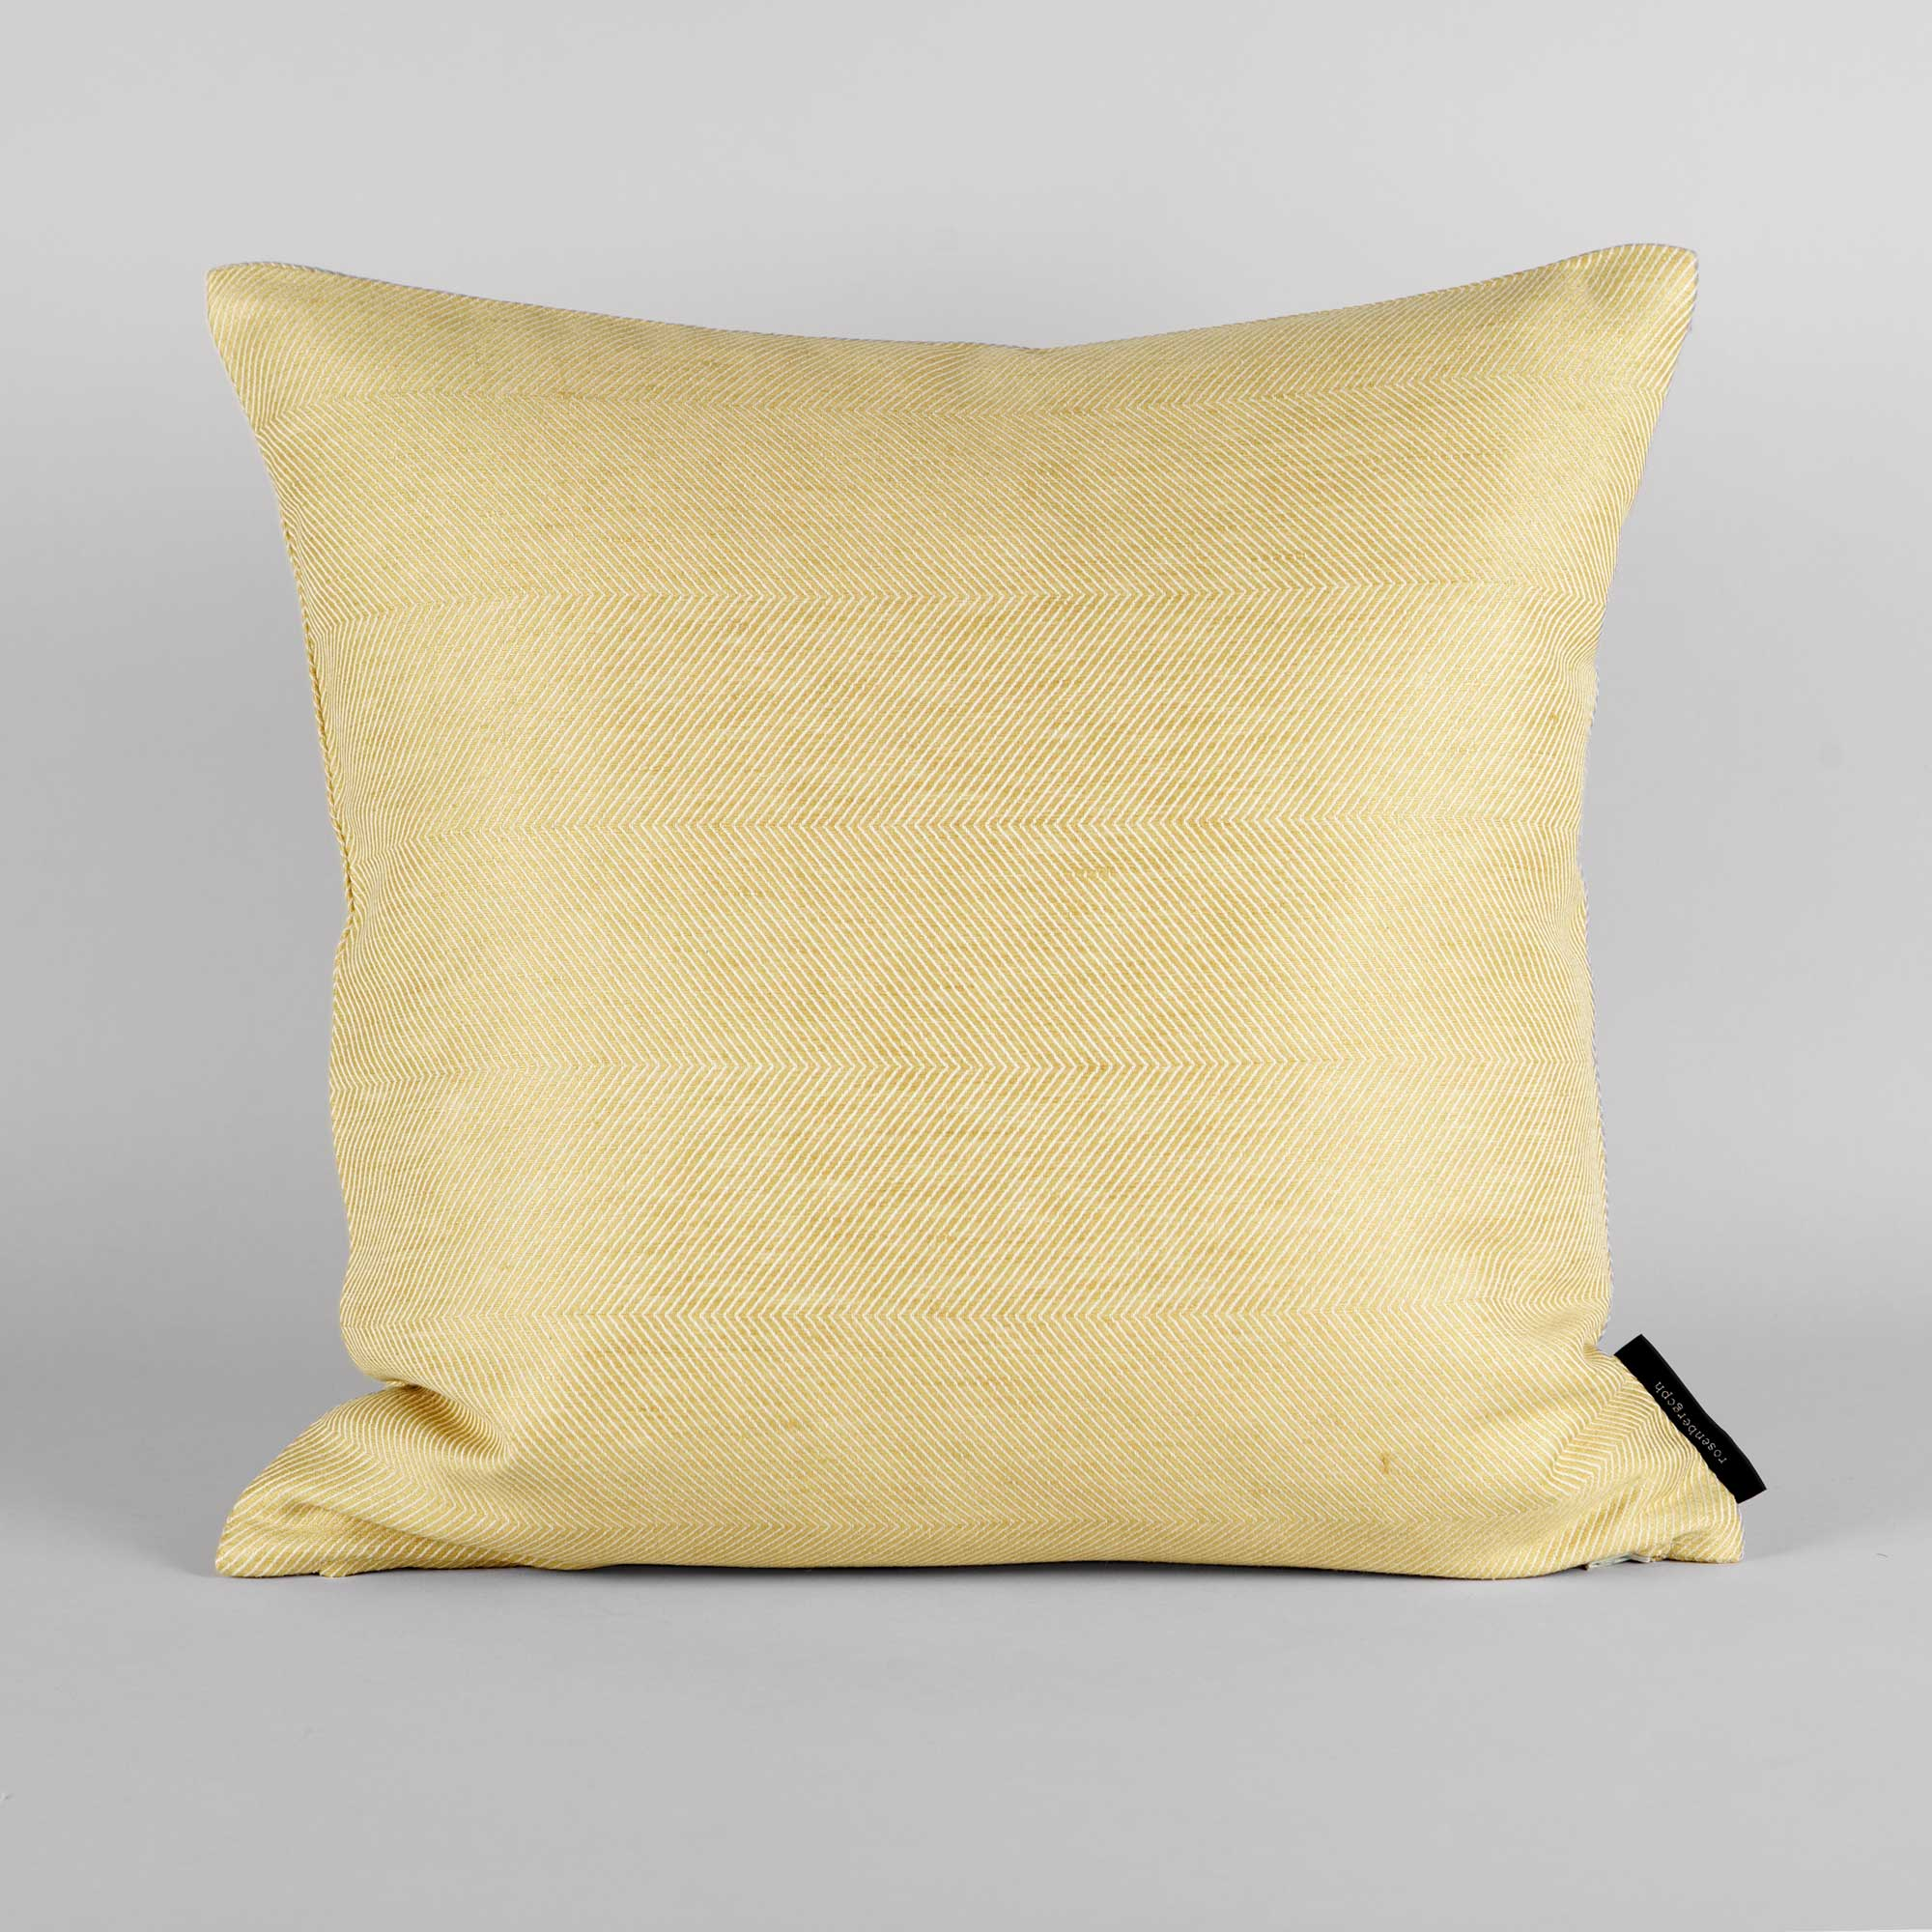 Square cushion linen/cotton hay yellow design by Anne Rosenberg, RosenbergCph